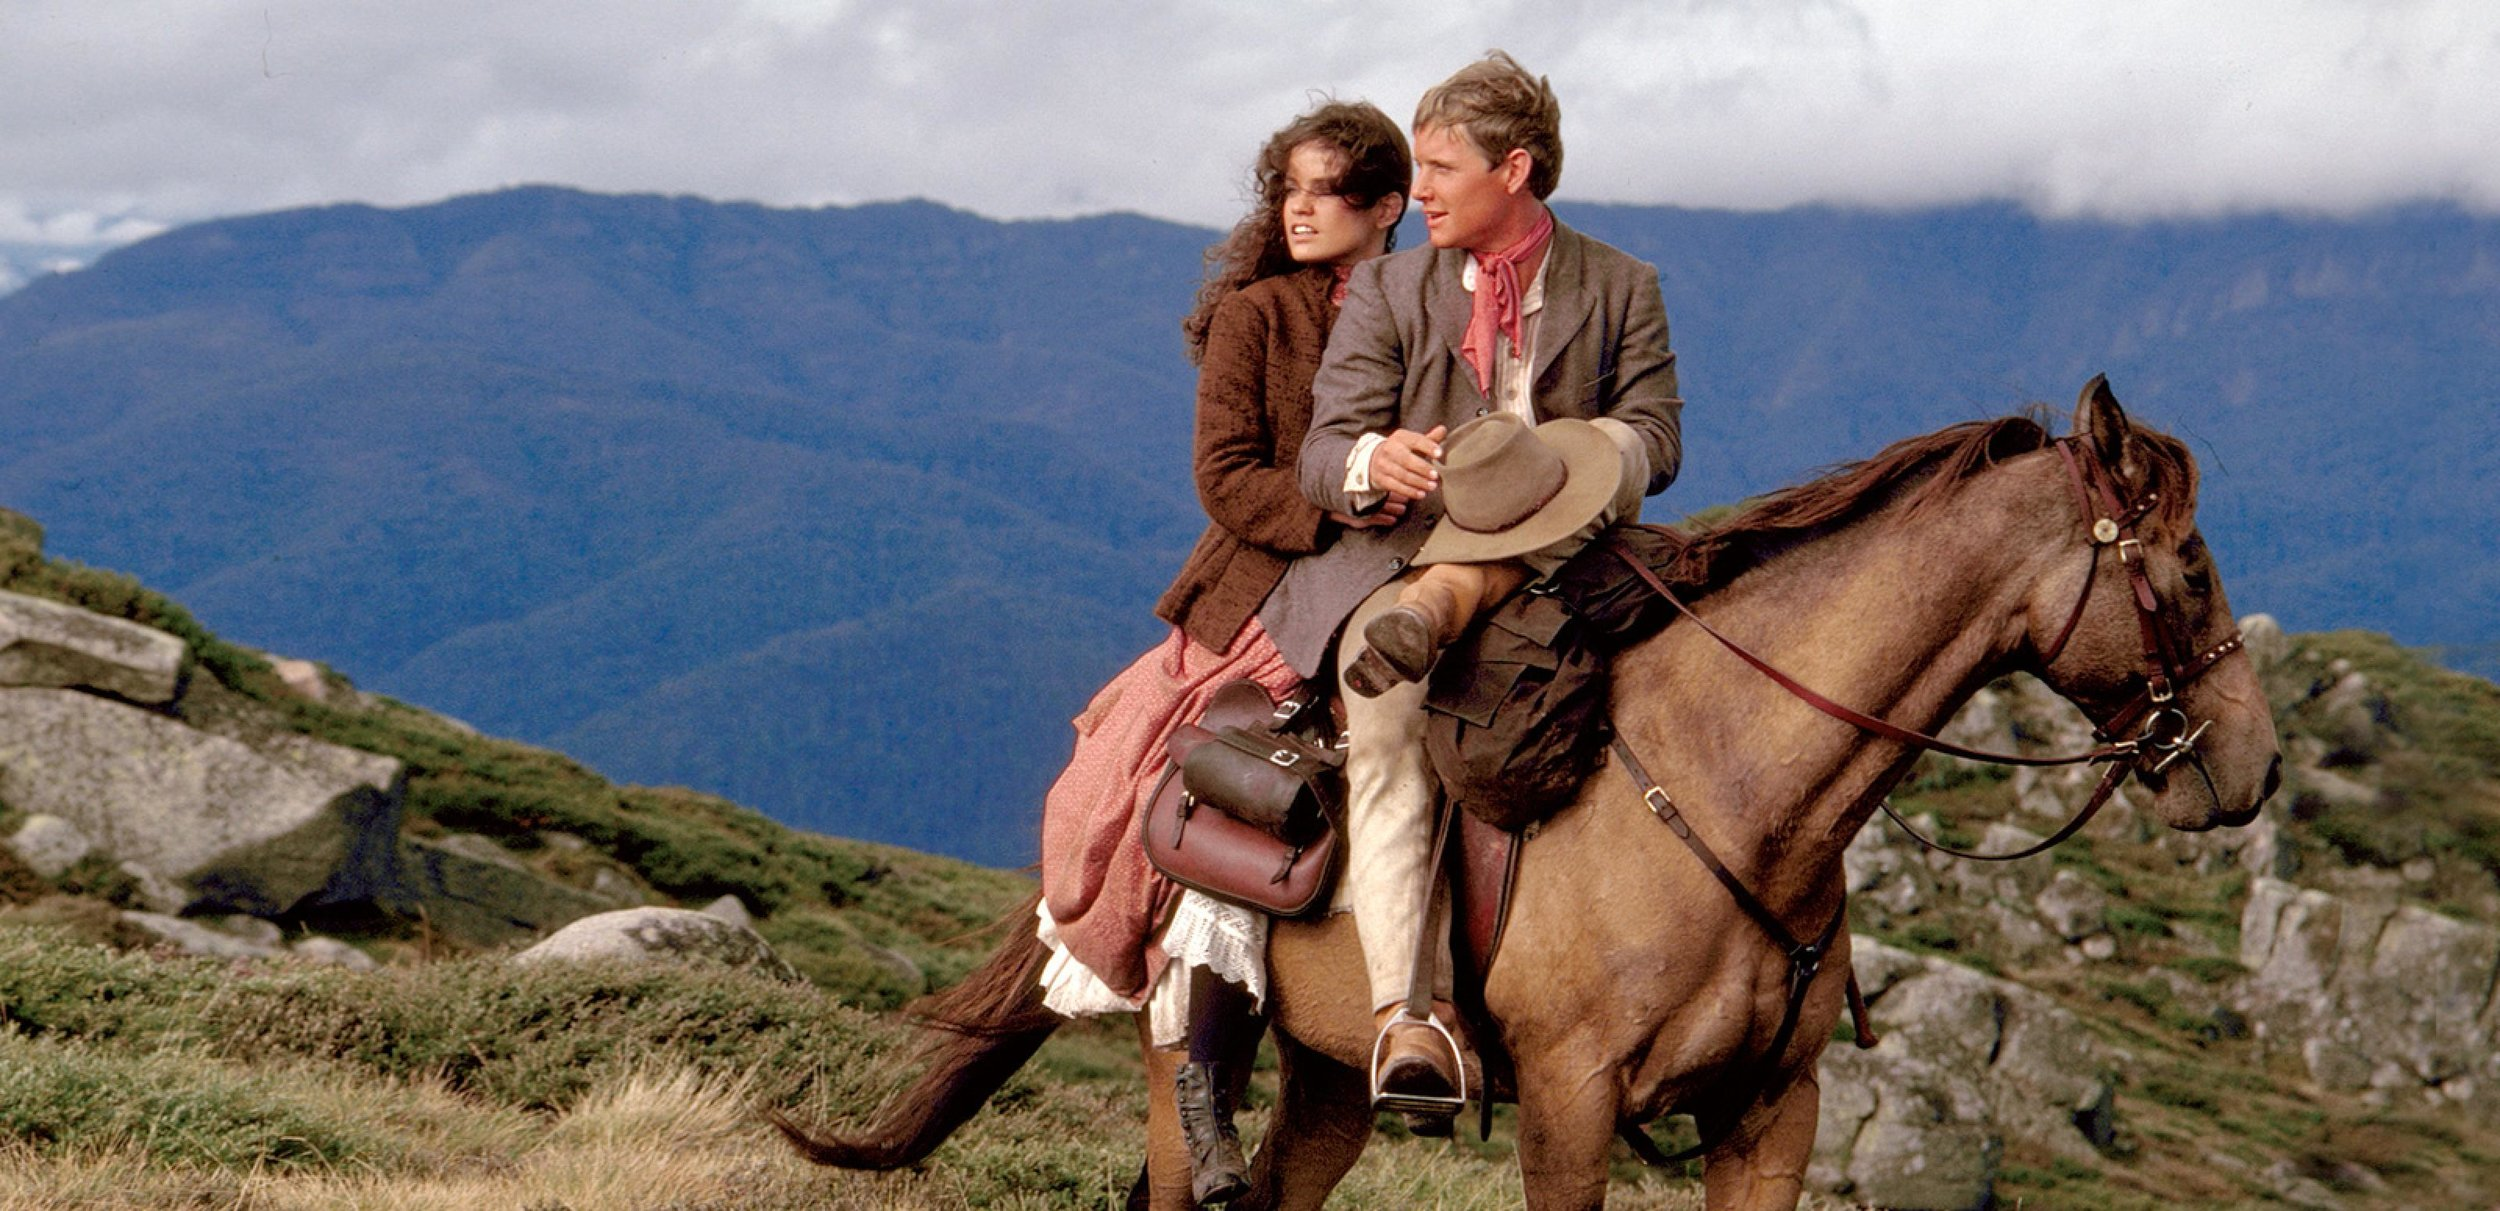 #96) The Man From Snowy River - (1982 - dir. George T. Miller)